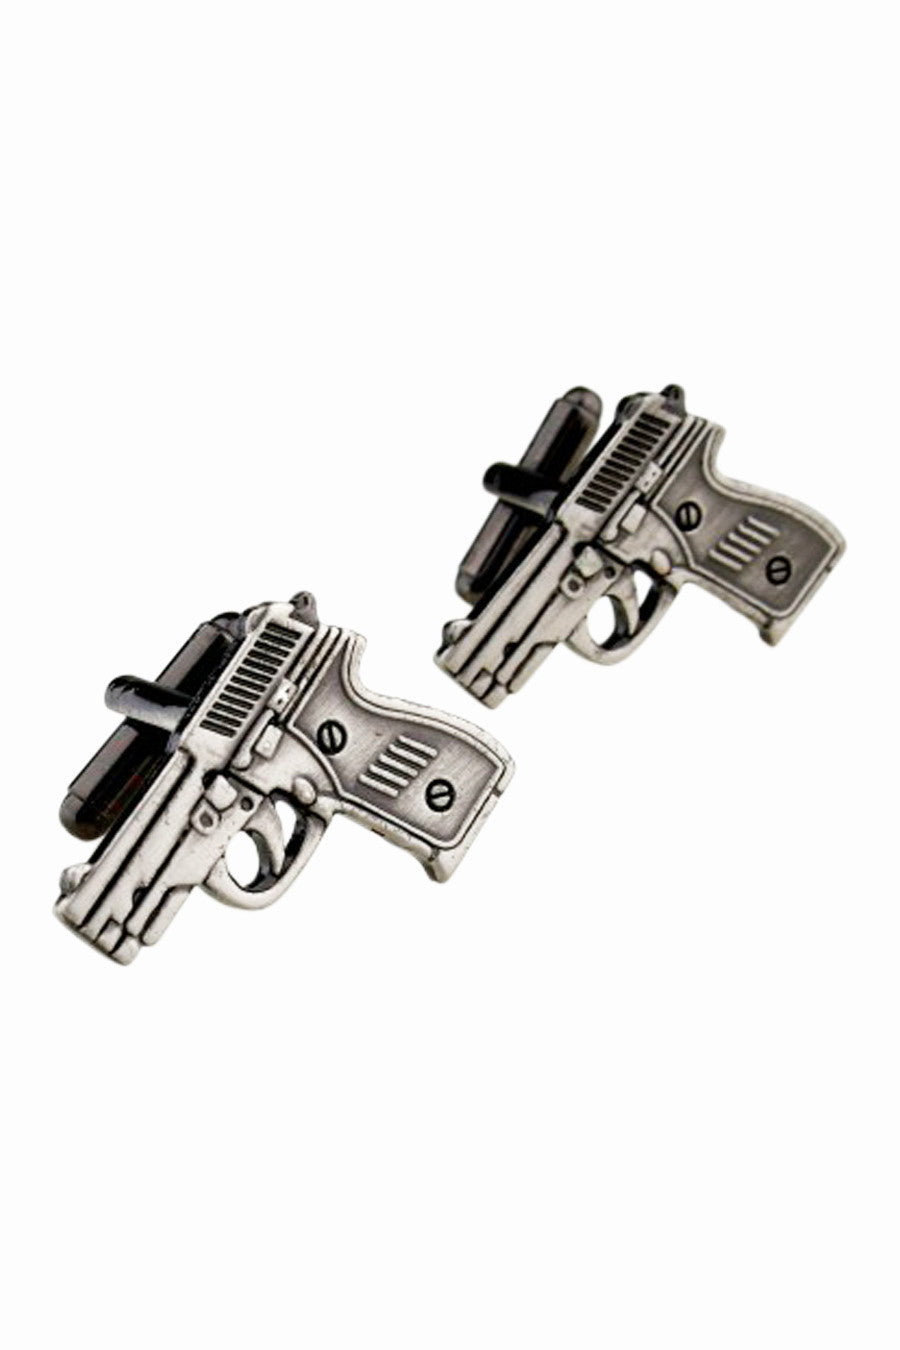 Men's Retro Gun Design Cufflinks